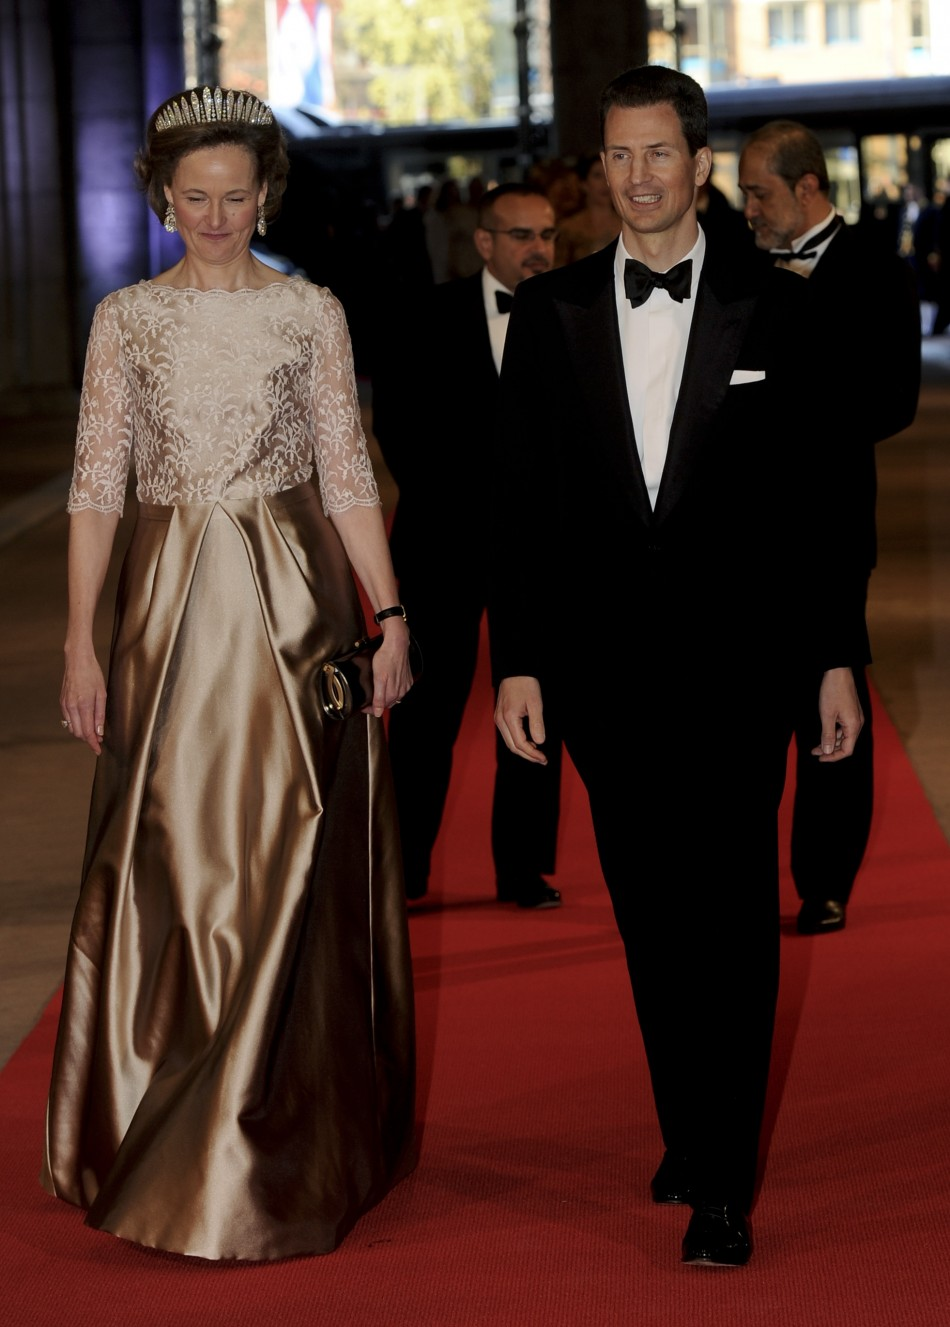 Crown Prince Alois of Liechtenstein R and Princess Sophie arrive at a gala dinner organised on the eve of the abdication of Queen Beatrix of the Netherlands and the inauguration of her successor King Willem-Alexander at the Rijksmuseum in Amsterdam Apri